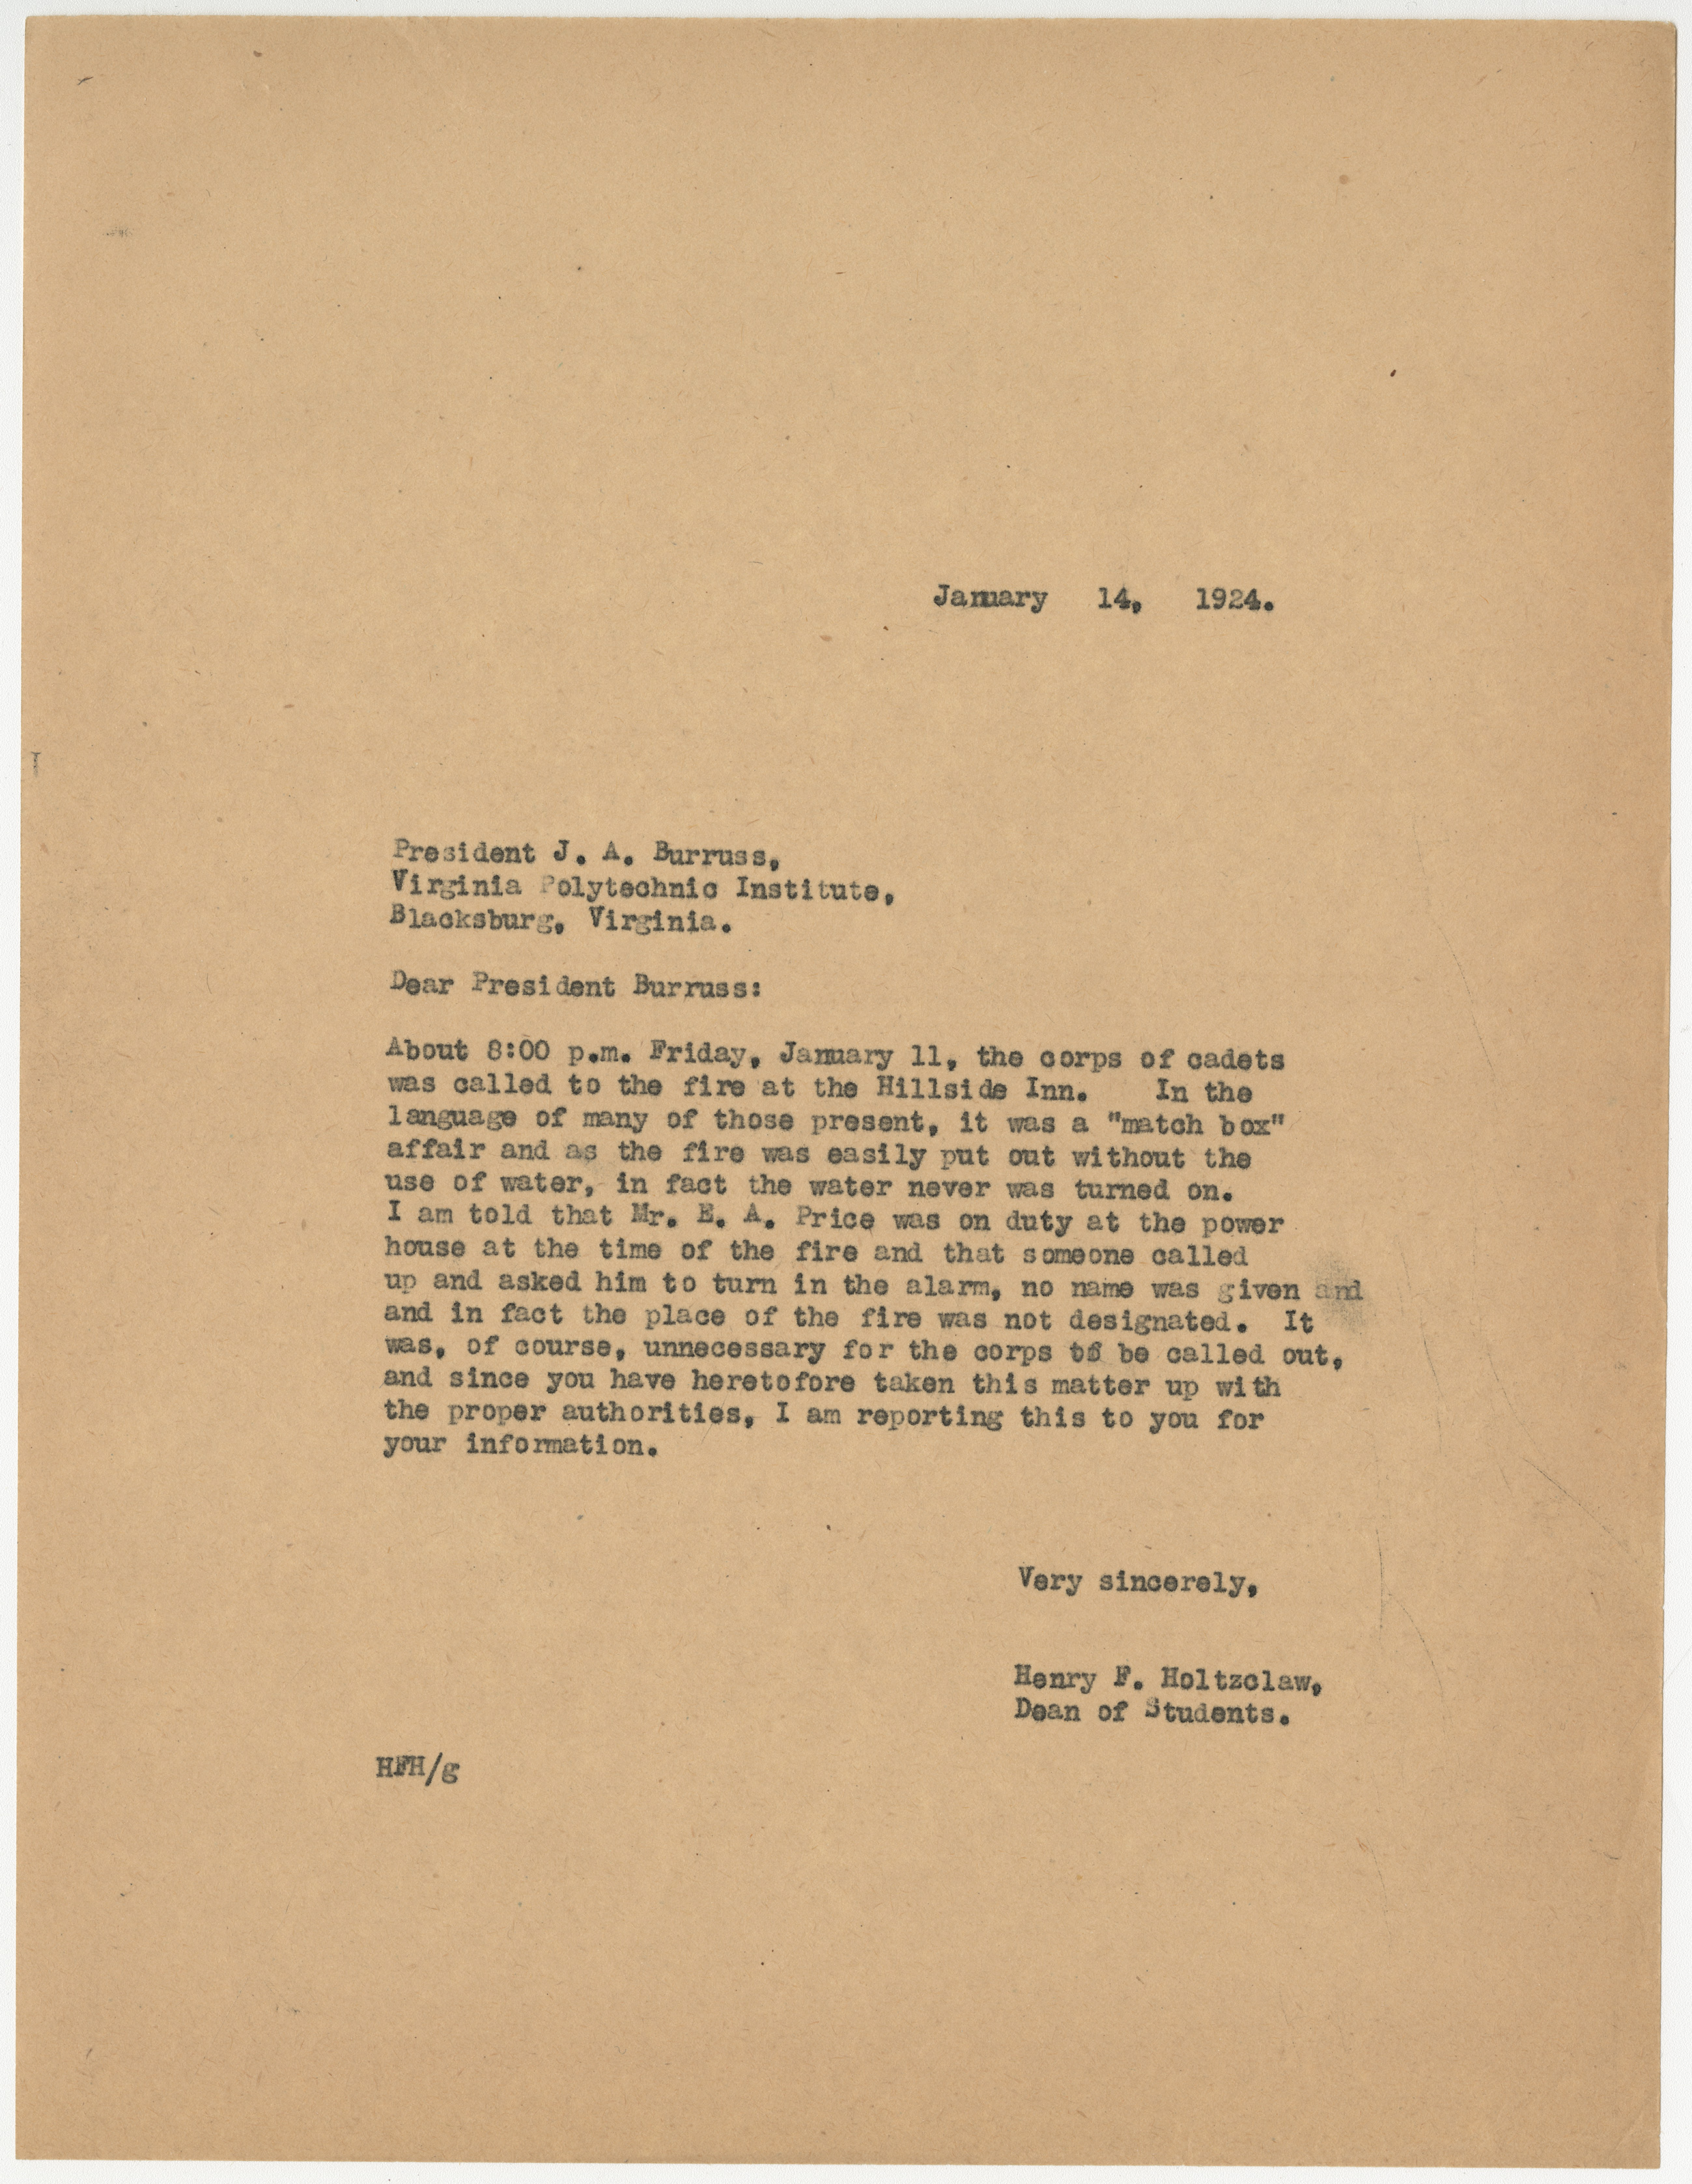 Letter from Henry F. Holtzclaw to President J.A. Burruss, regarding the corps responding to a fire, January 14, 1924, from the Records of the Dean of Students, Henry F. Holtzclaw, RG 8/2a